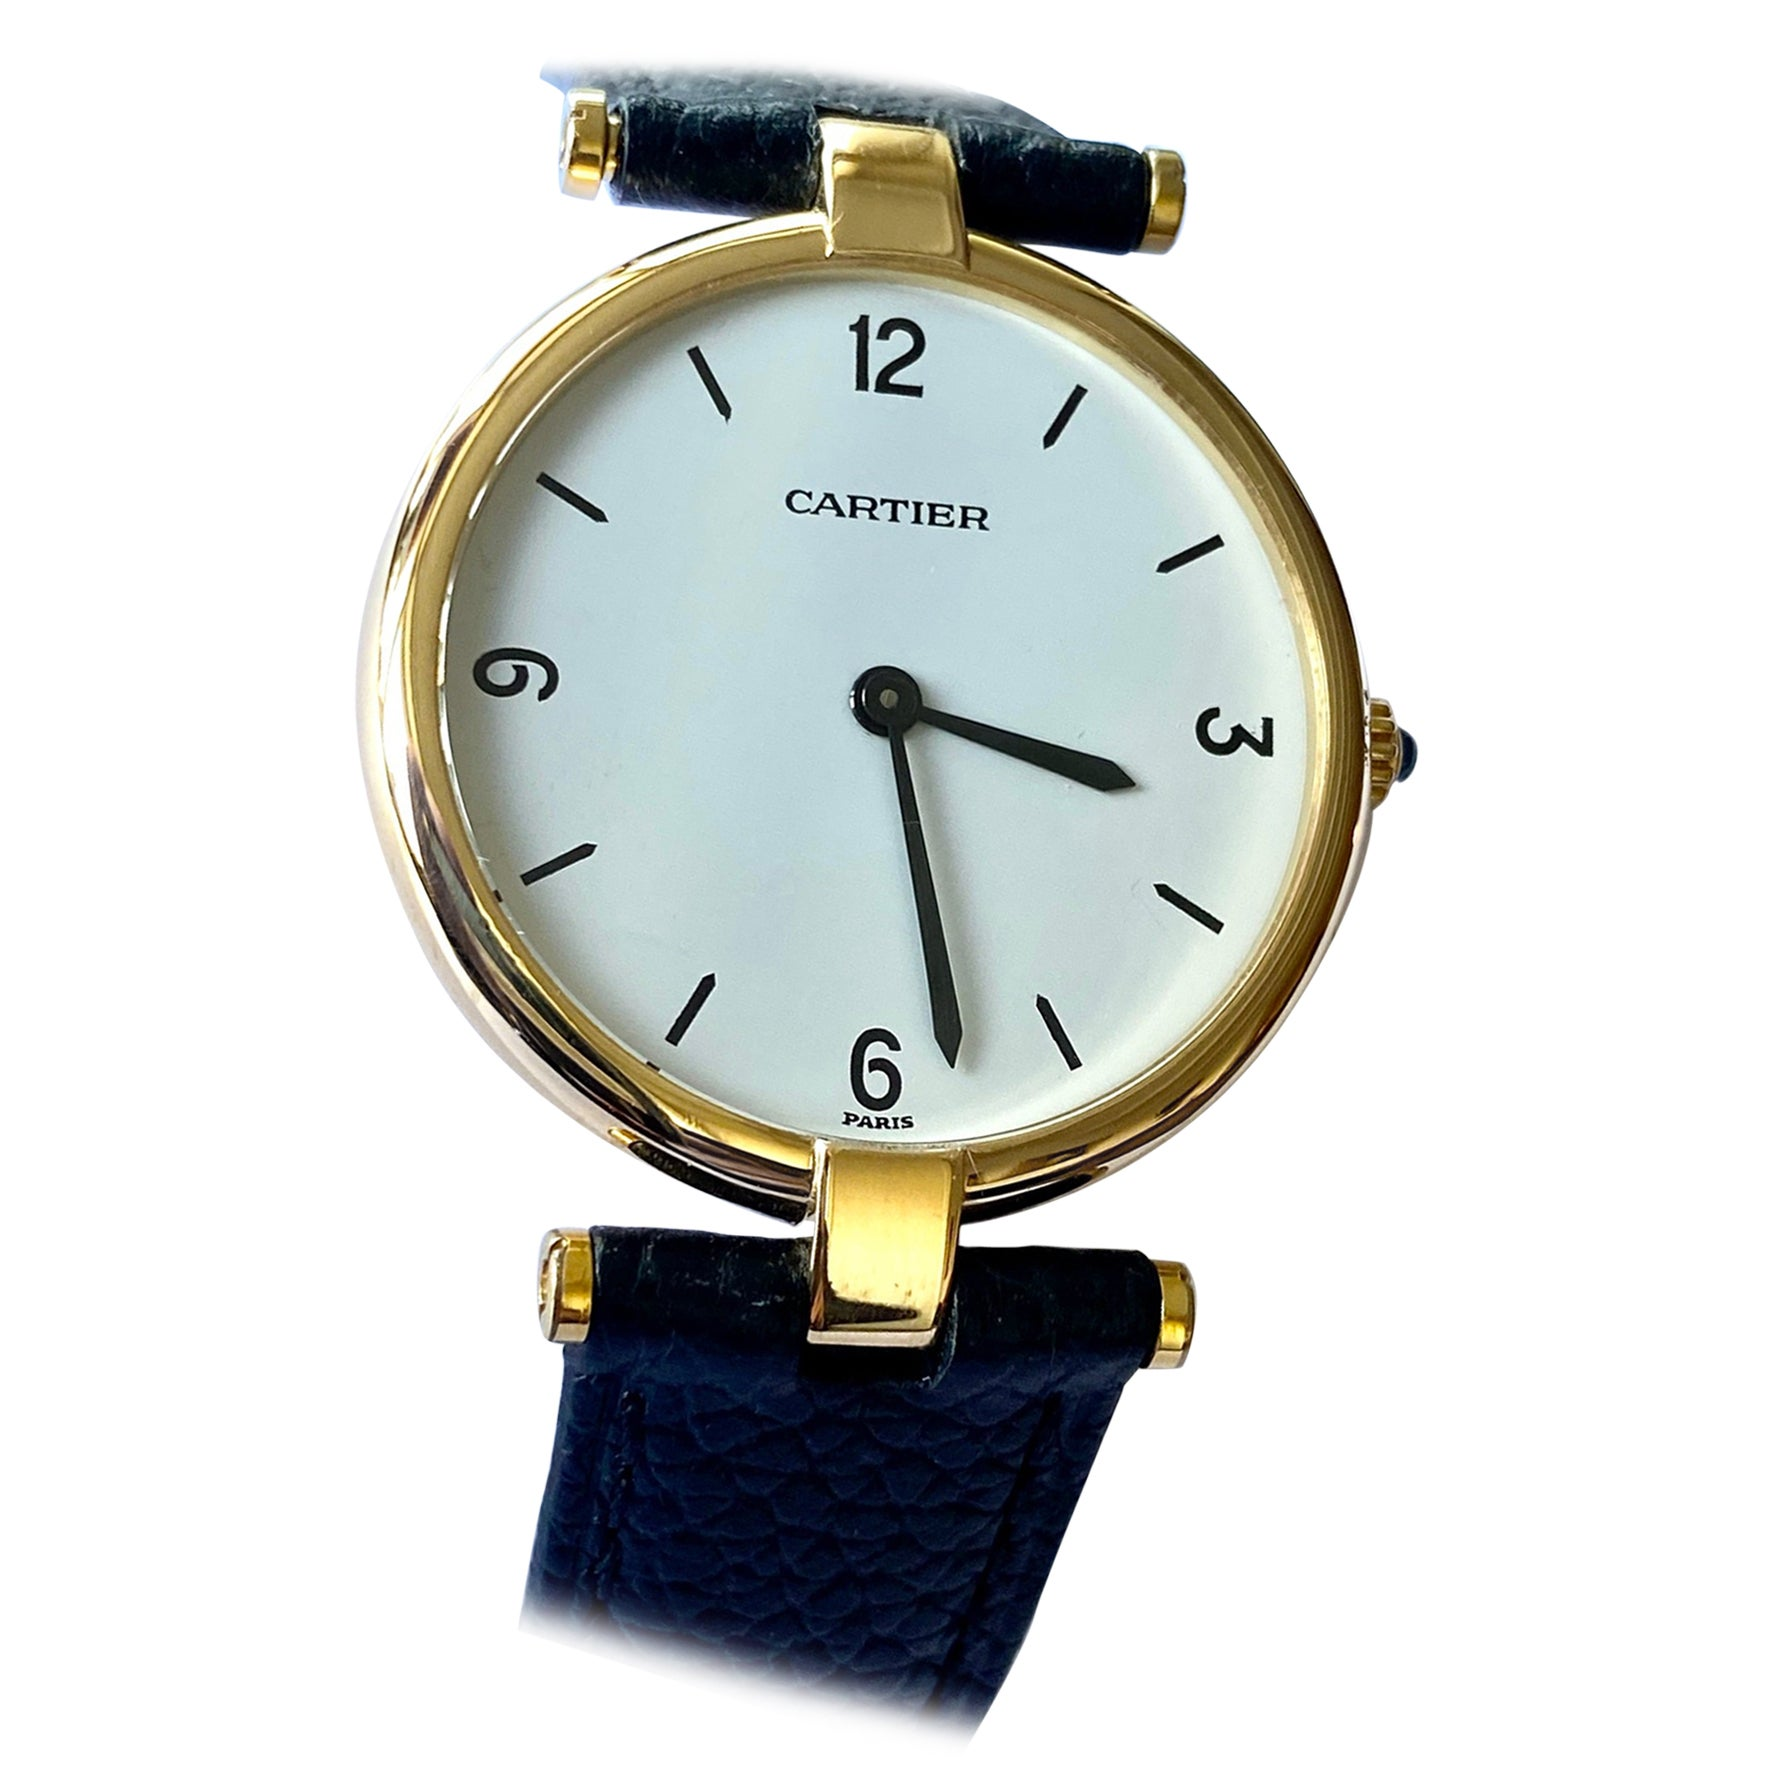 Cartier Paris, Yellow Gold Watch, Model: Vendôme Large Model' Nr 81001